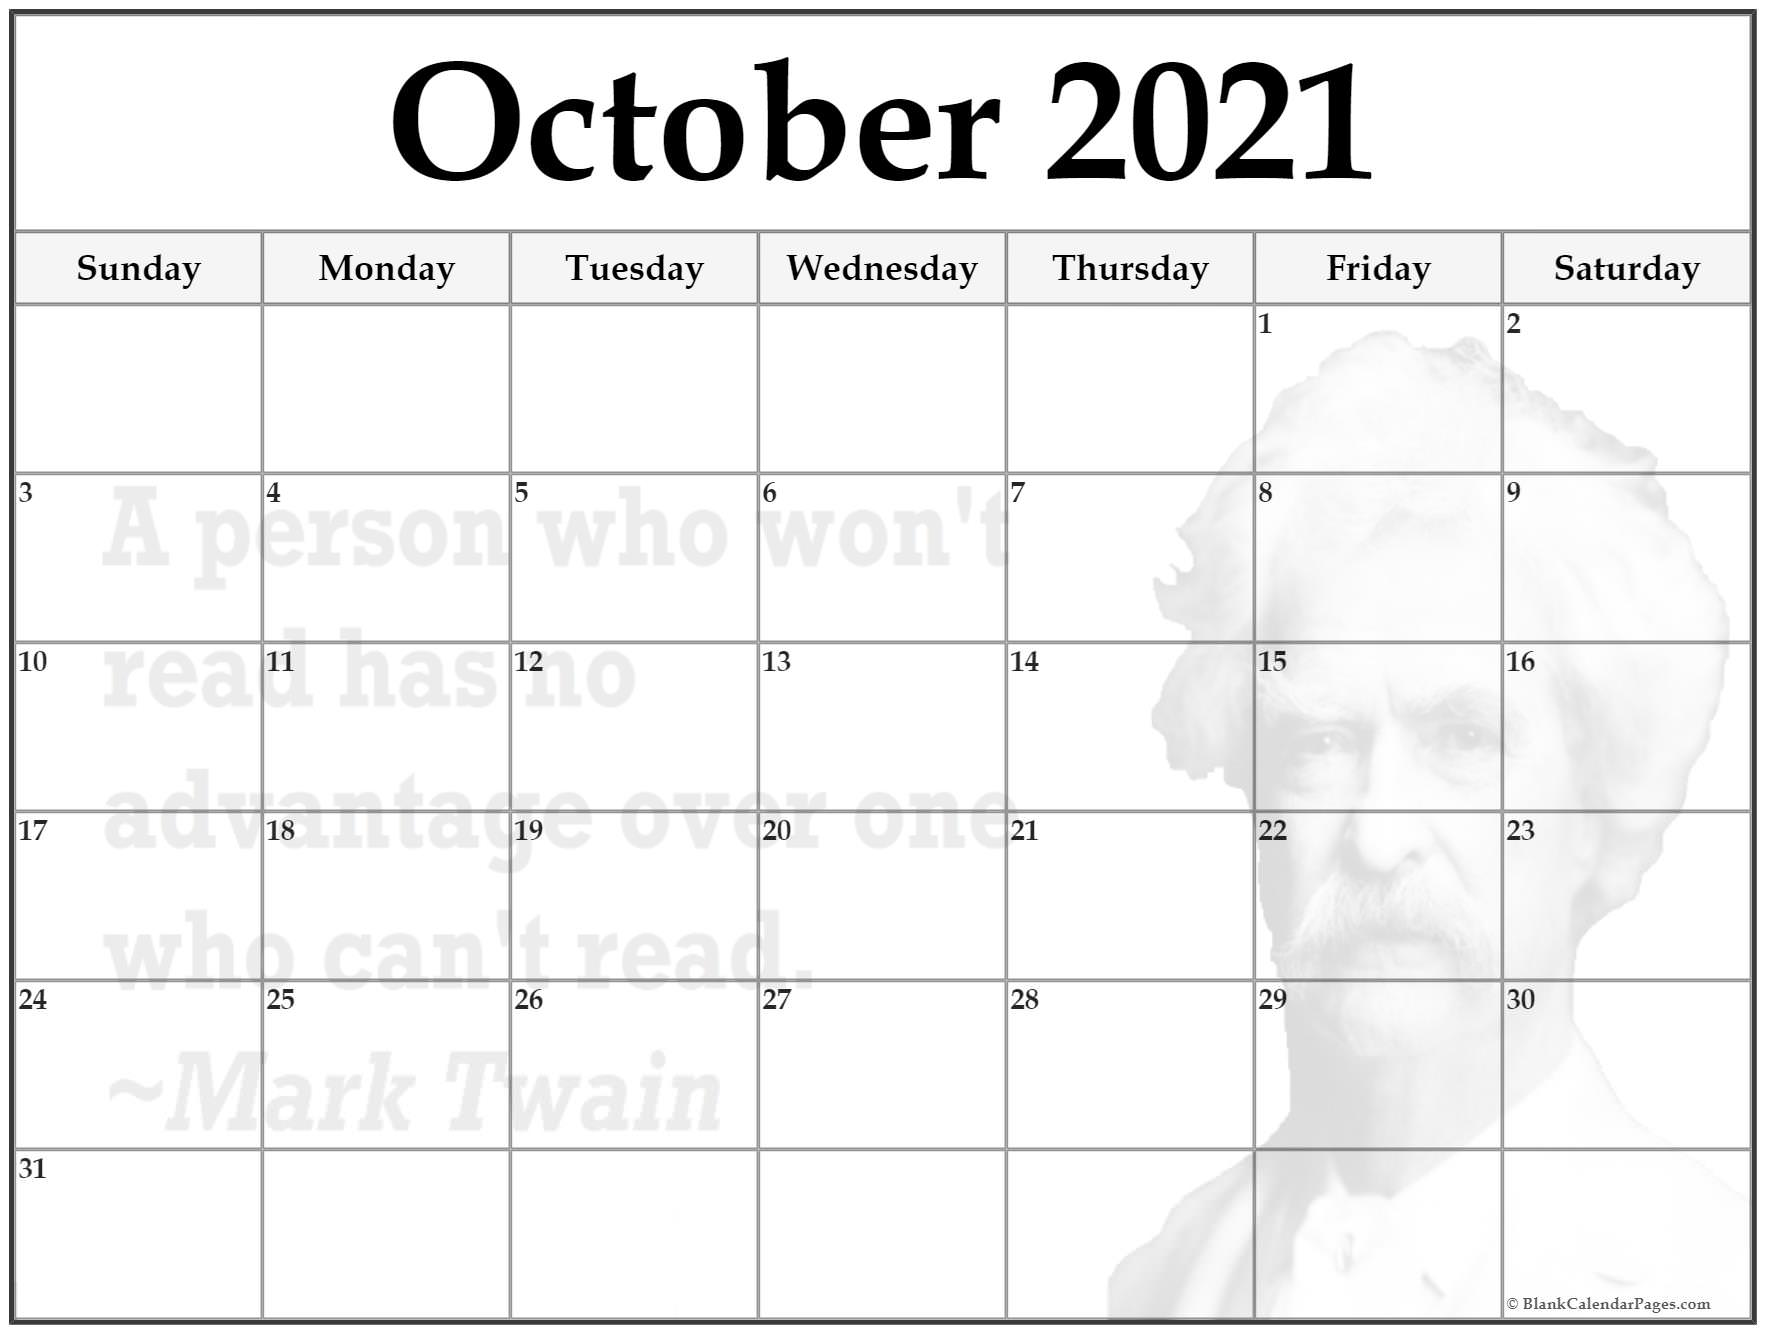 October 2020 with twain quotes. A person who won't read has no advantage over a person who can't read. ~Mark Twain